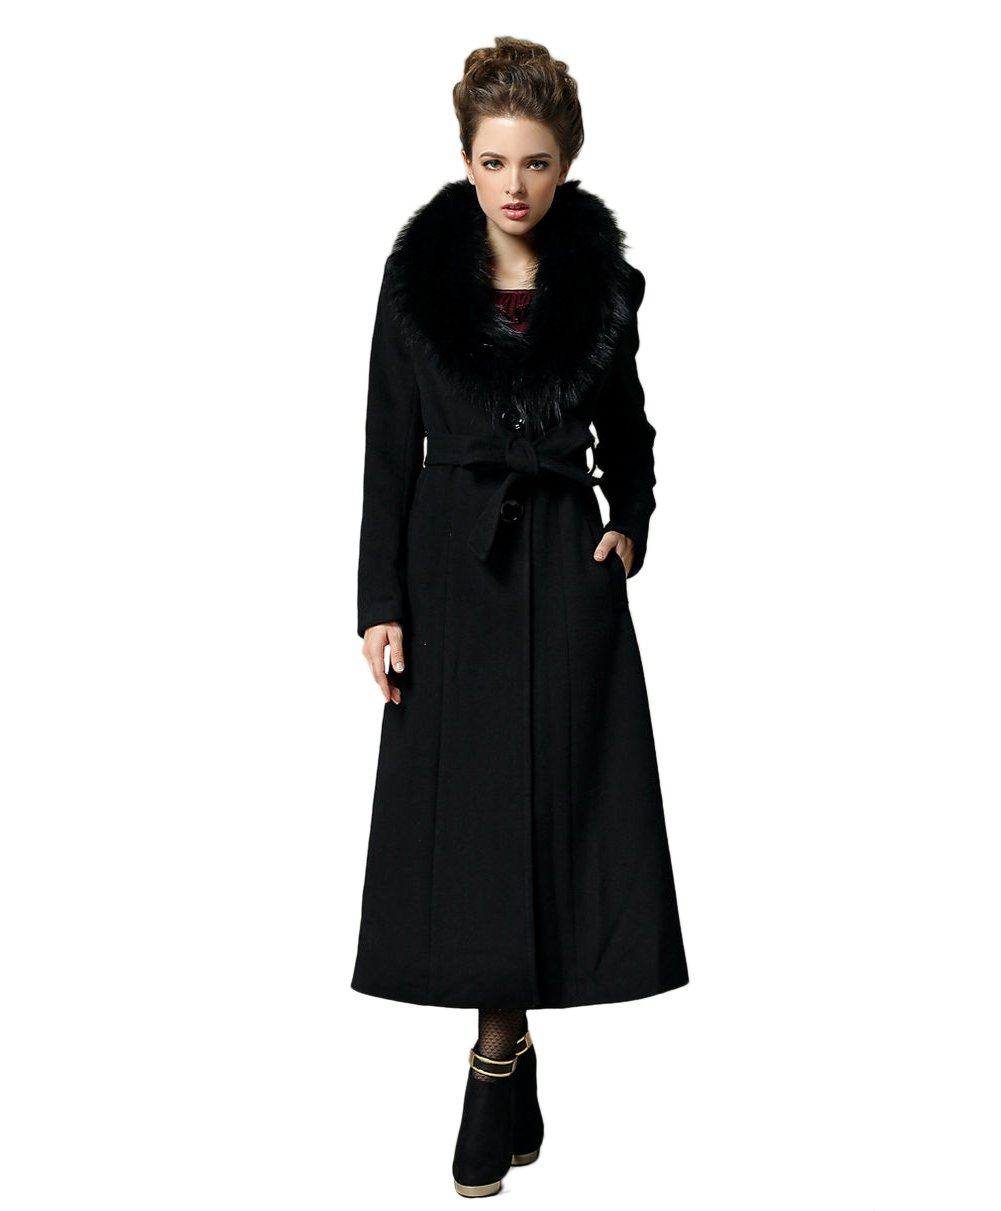 Женское шерстяное пальто Teenloveme 2013 New Arrival Women's Long Fur Collar Wool Coat Winter Outwear